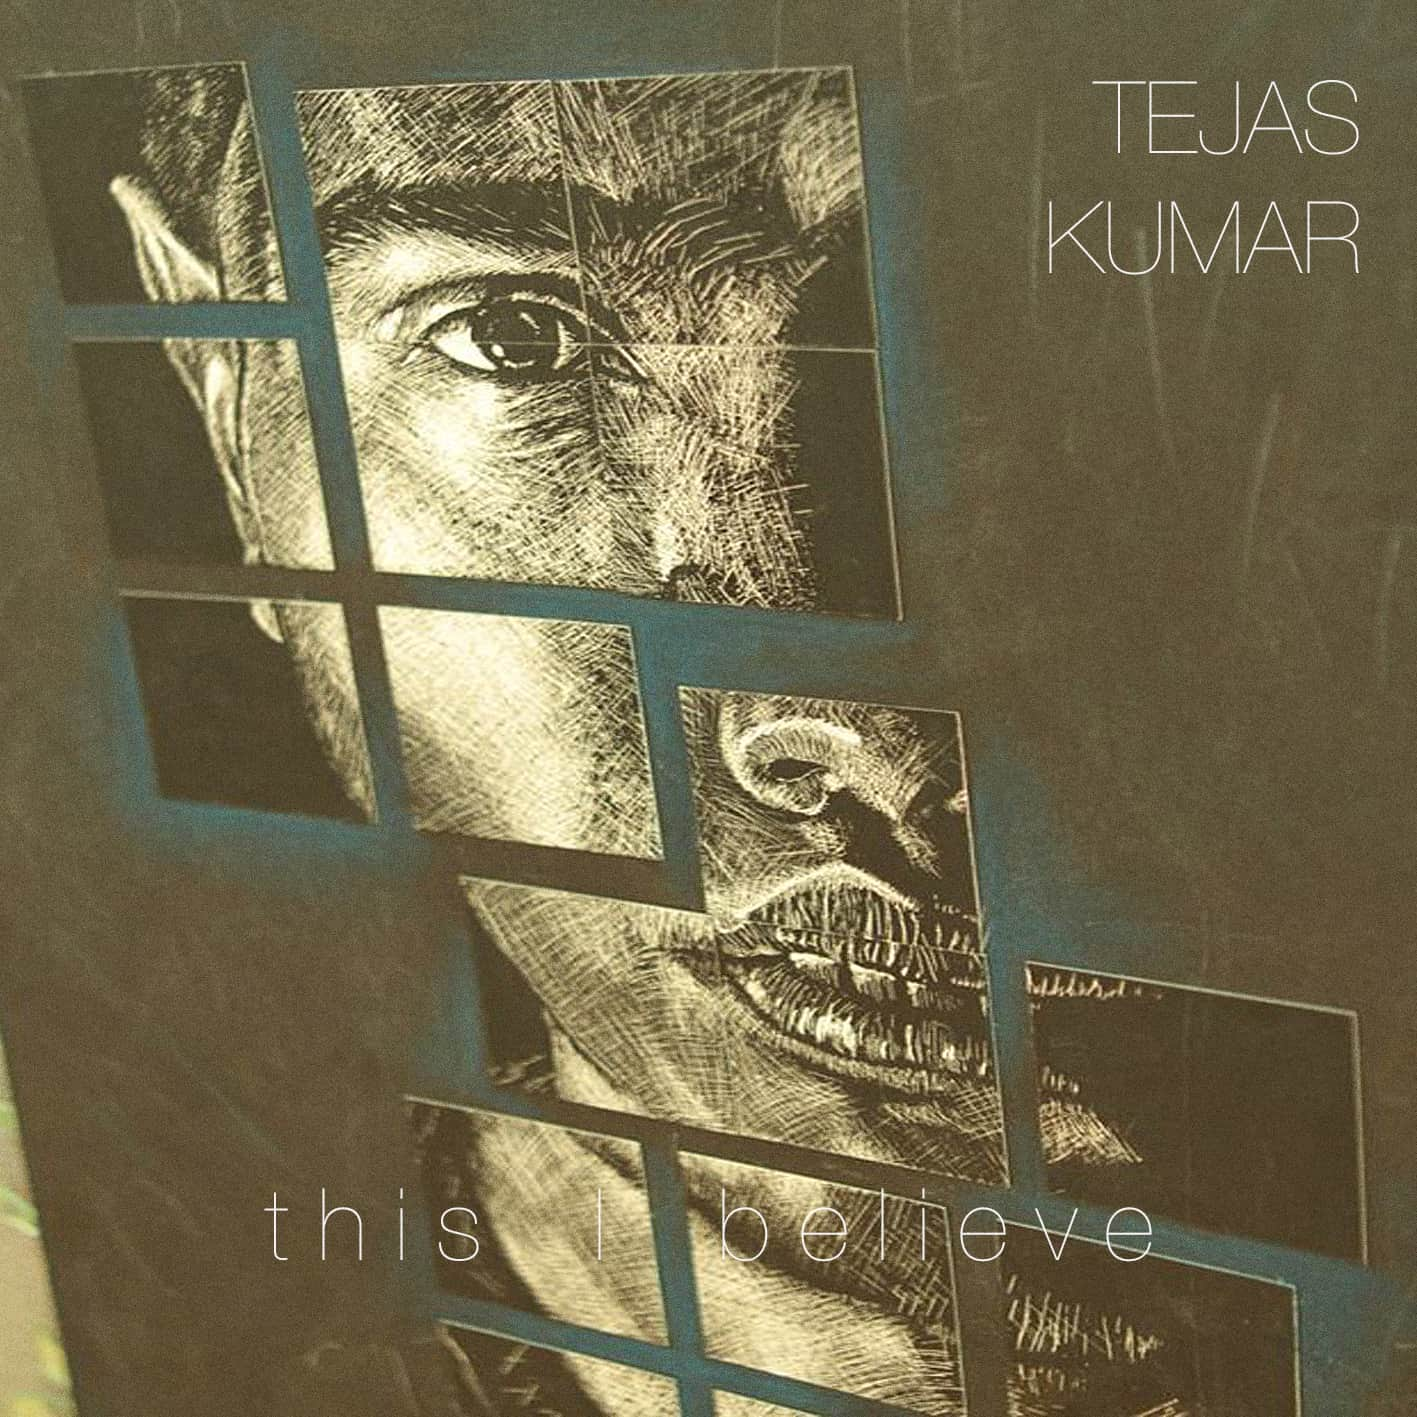 Tejas Kumar, This I Believe